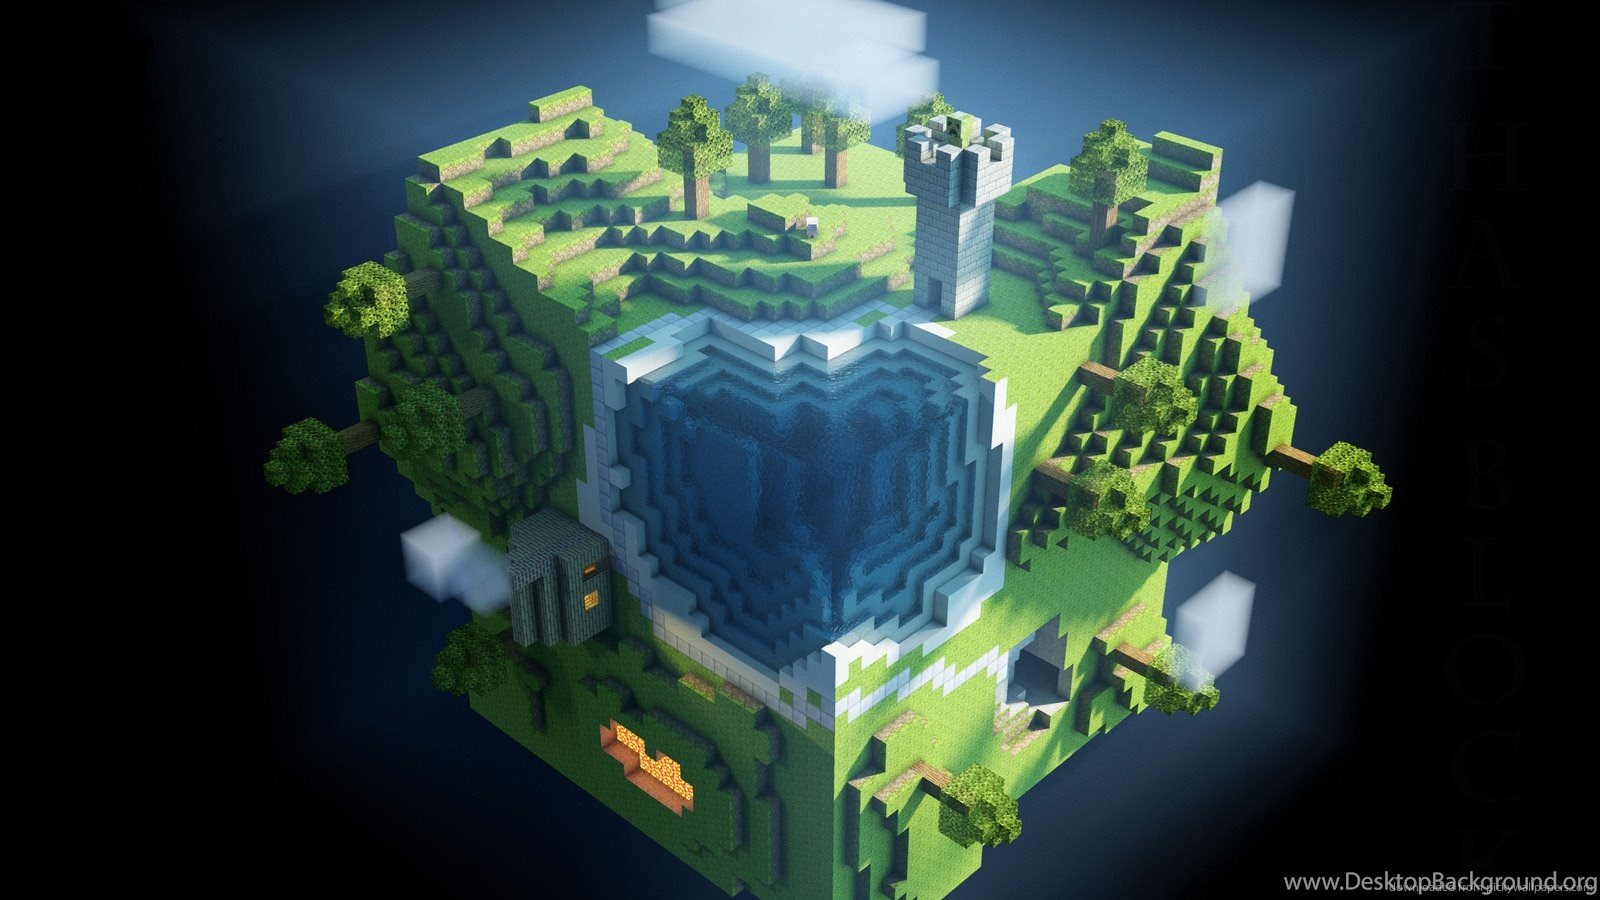 Great Wallpaper Minecraft Square - 809651_download-1600x900-minecraft-square-globe-wallpapers_1600x900_h  Pictures_481488.jpg